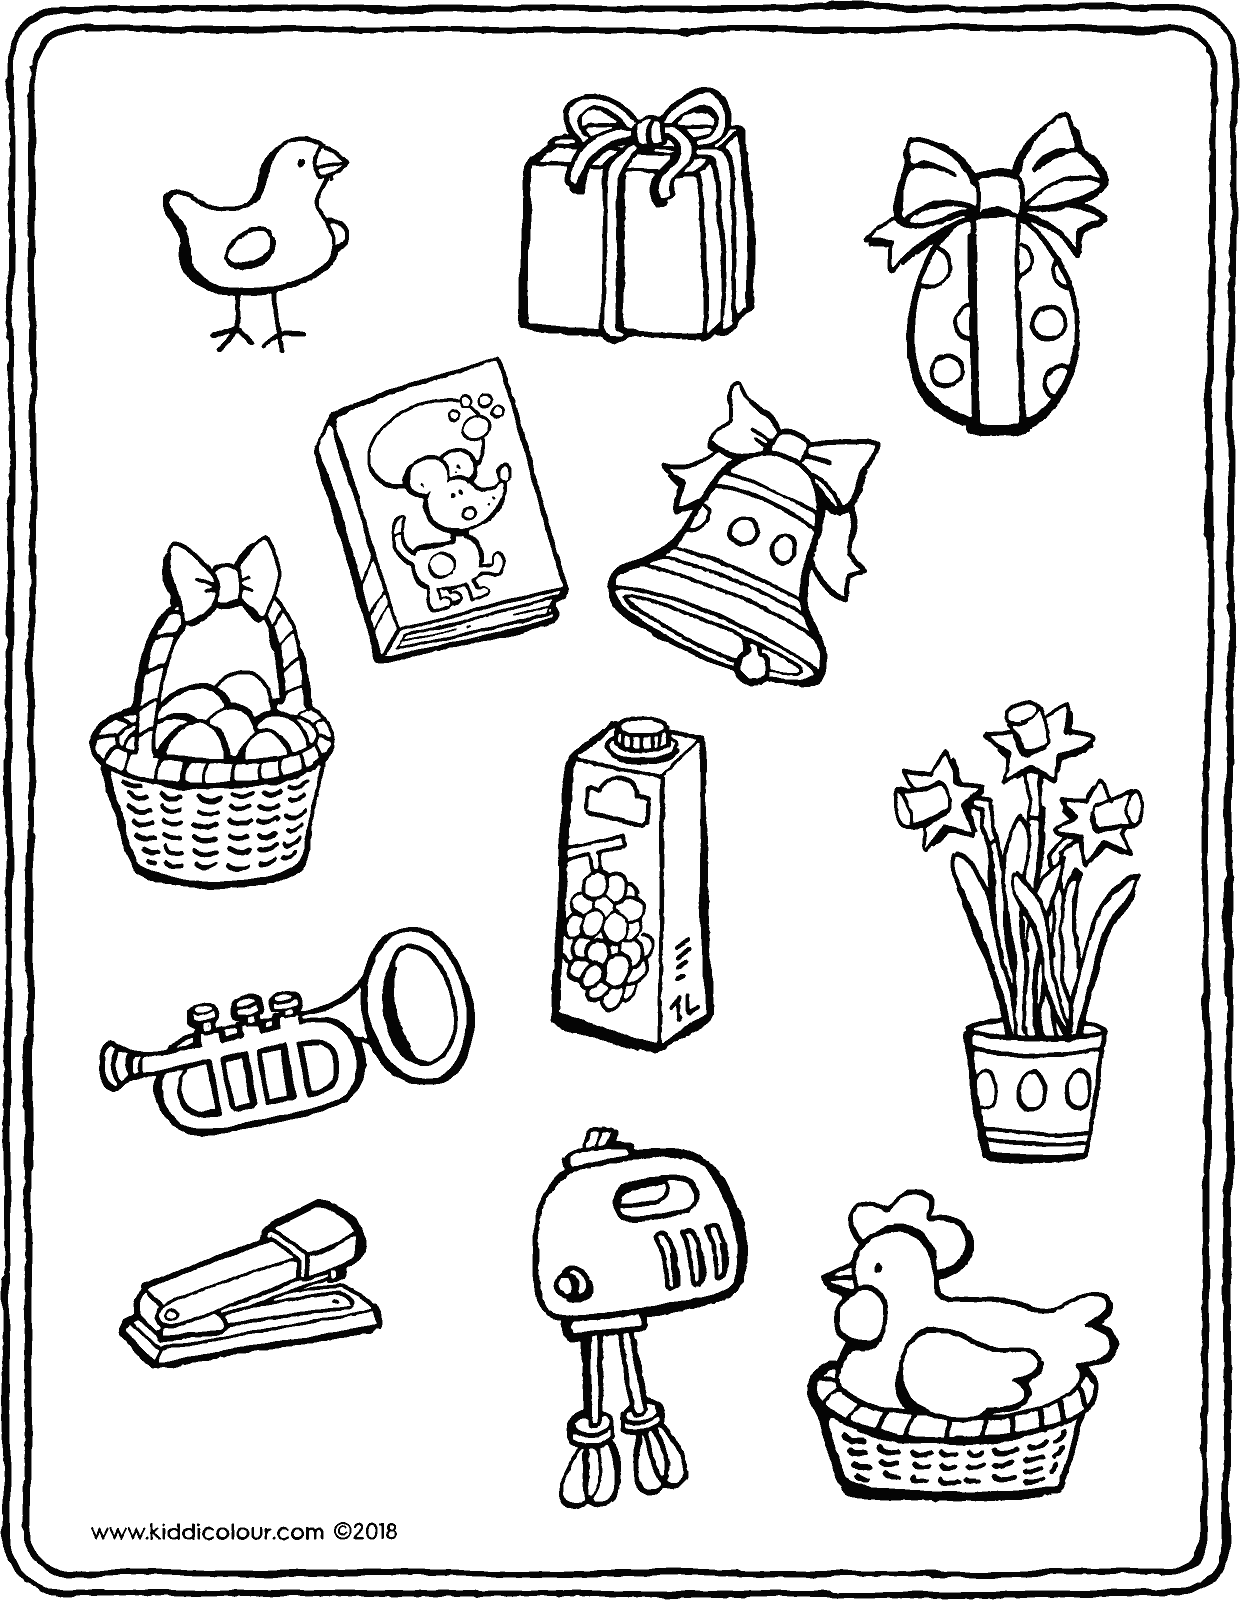 colour in everything related to Easter colouring page drawing picture 01V